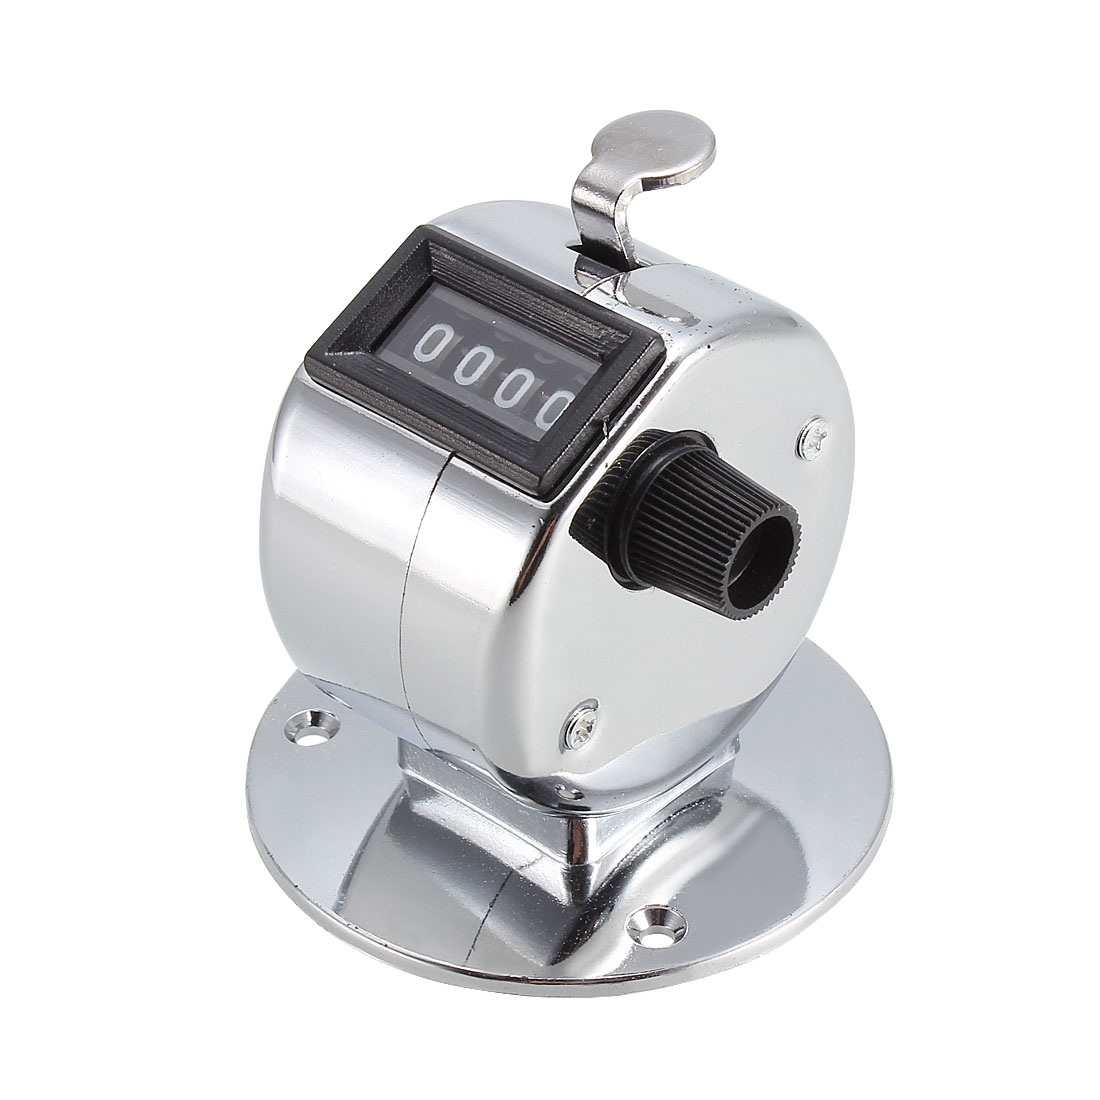 Stainless 4 Digits Desk Hand held Counter